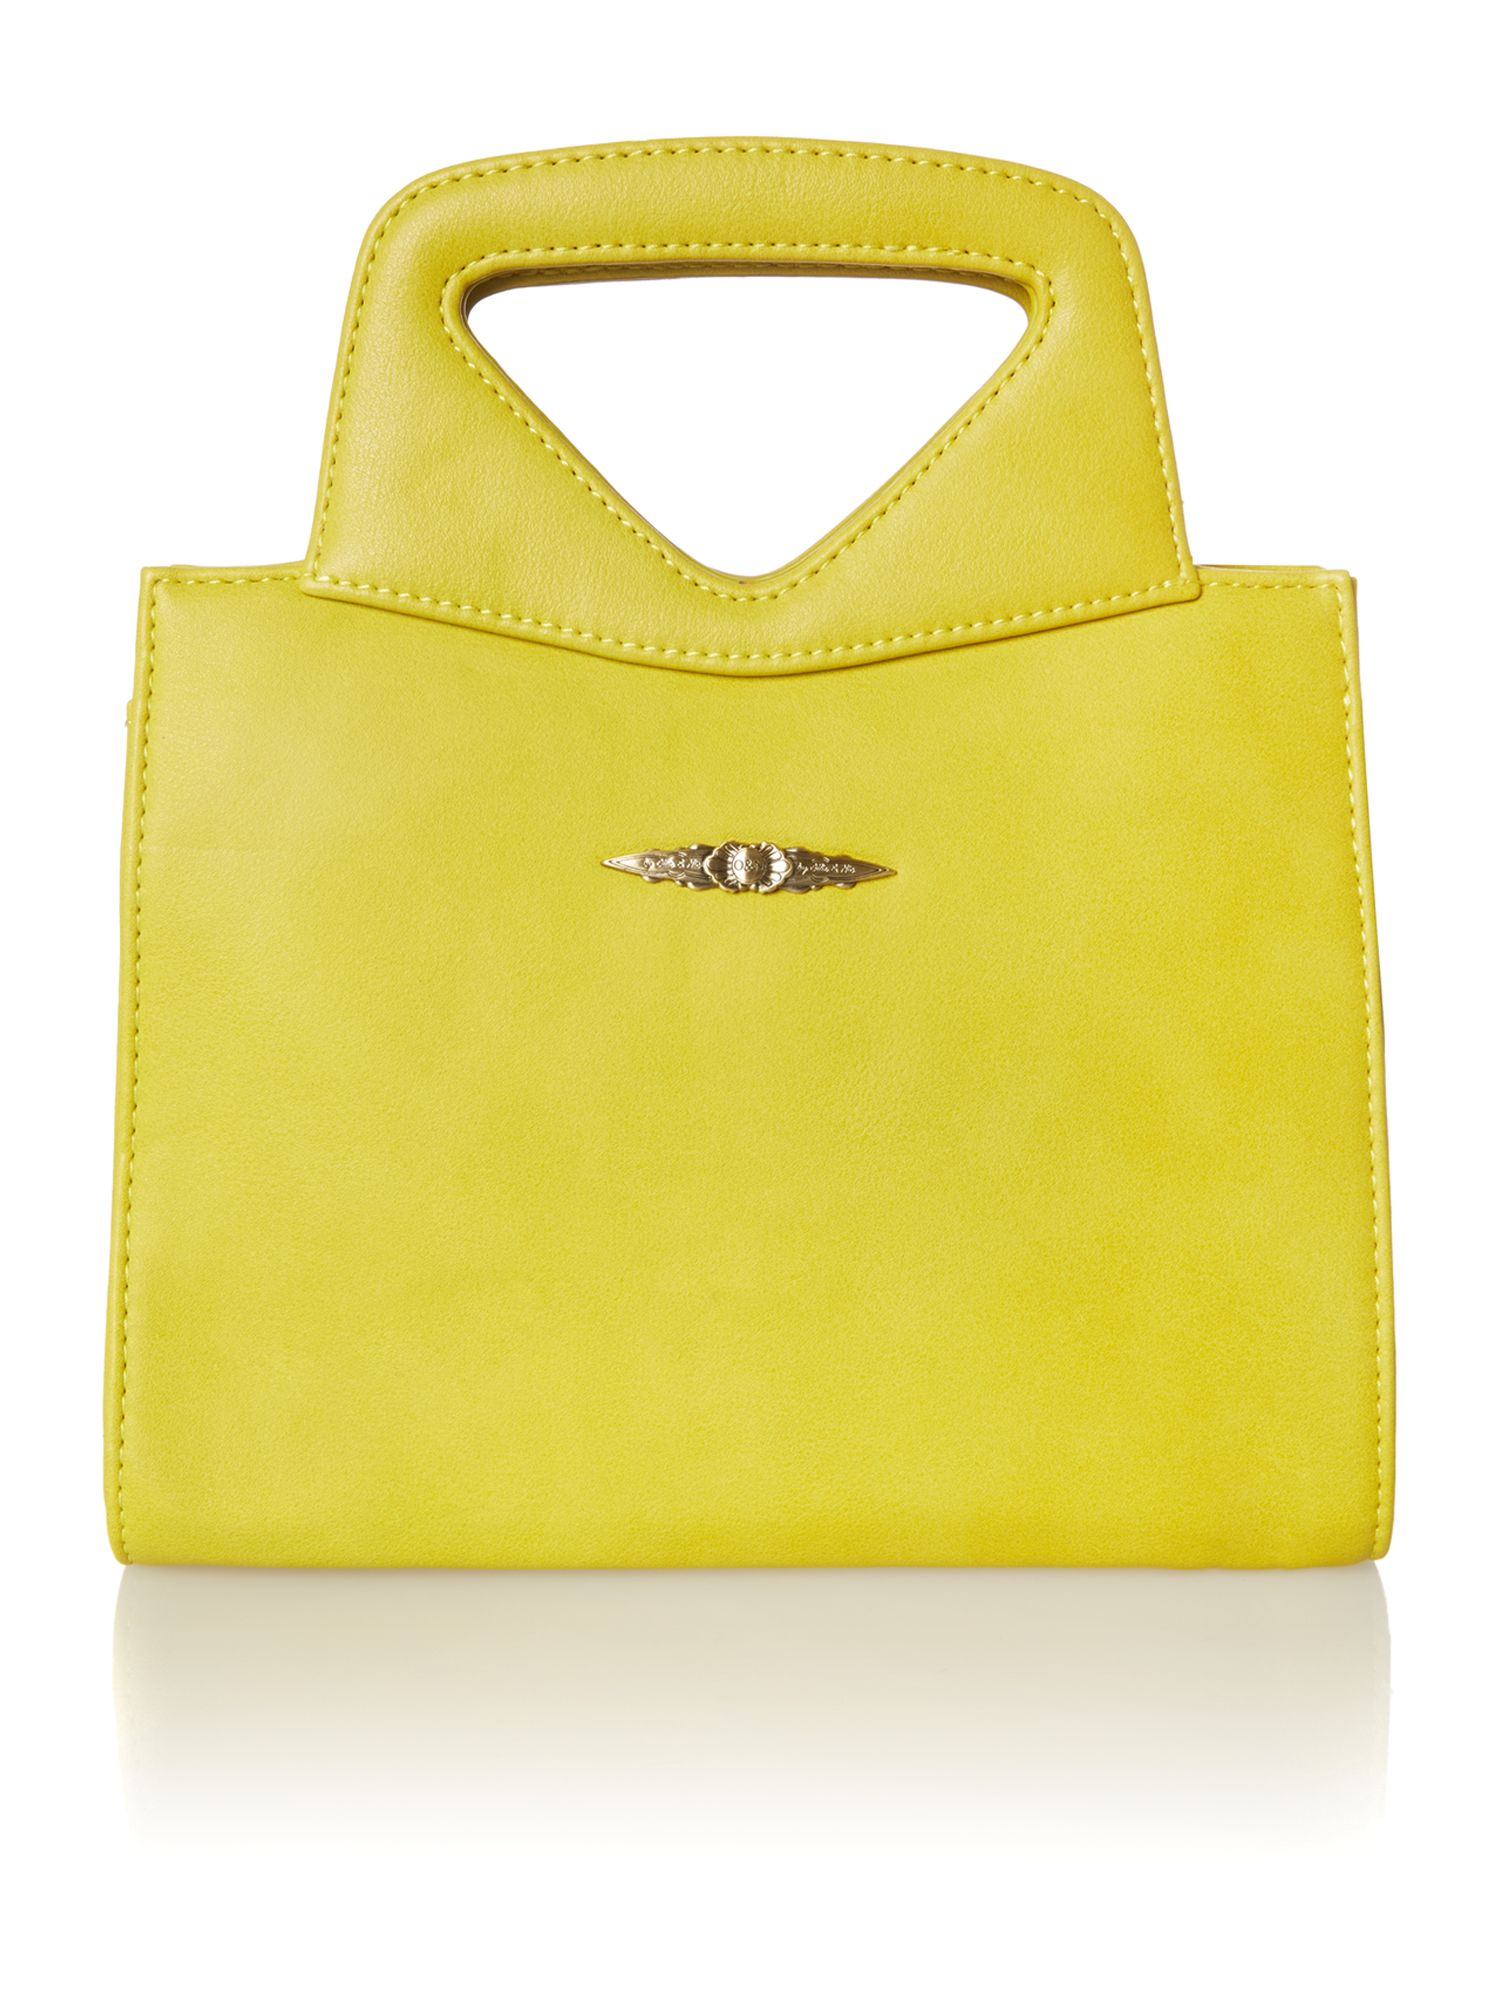 Toby yellow small cross body bag